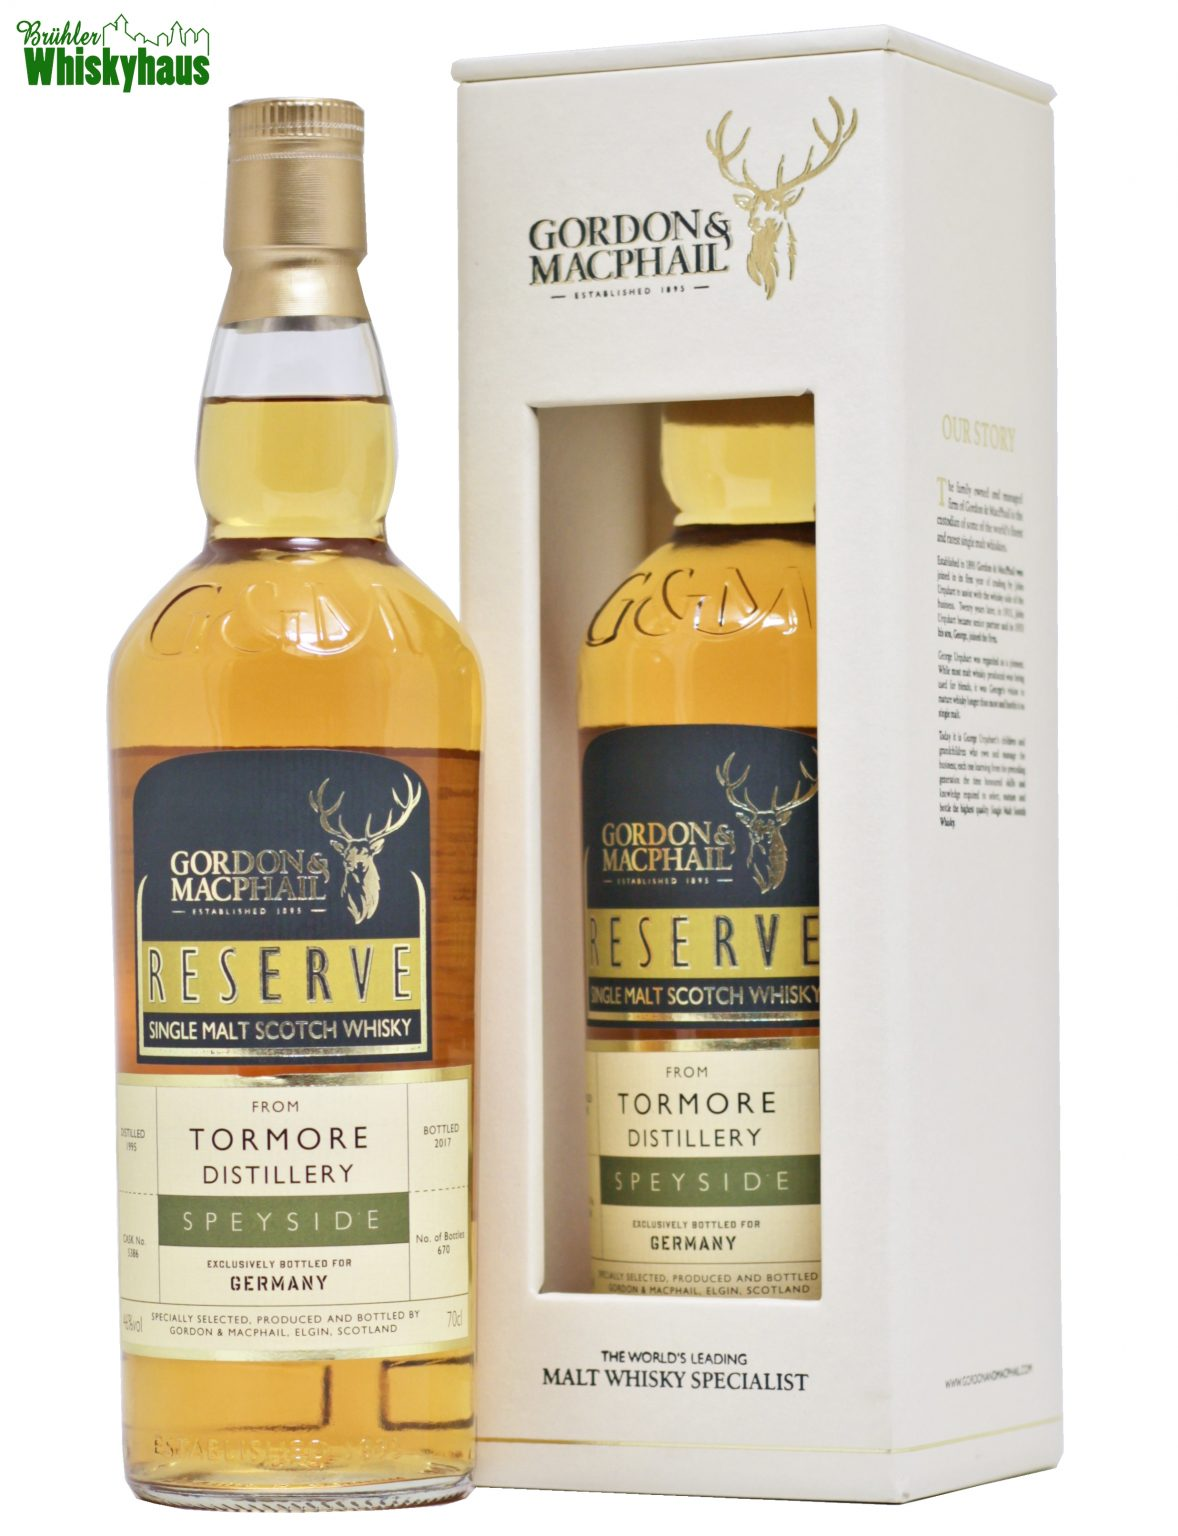 Tormore 21 Jahre - Refill Sherry Puncheon - Gordon & MacPhail -Single Malt Scotch Whisky